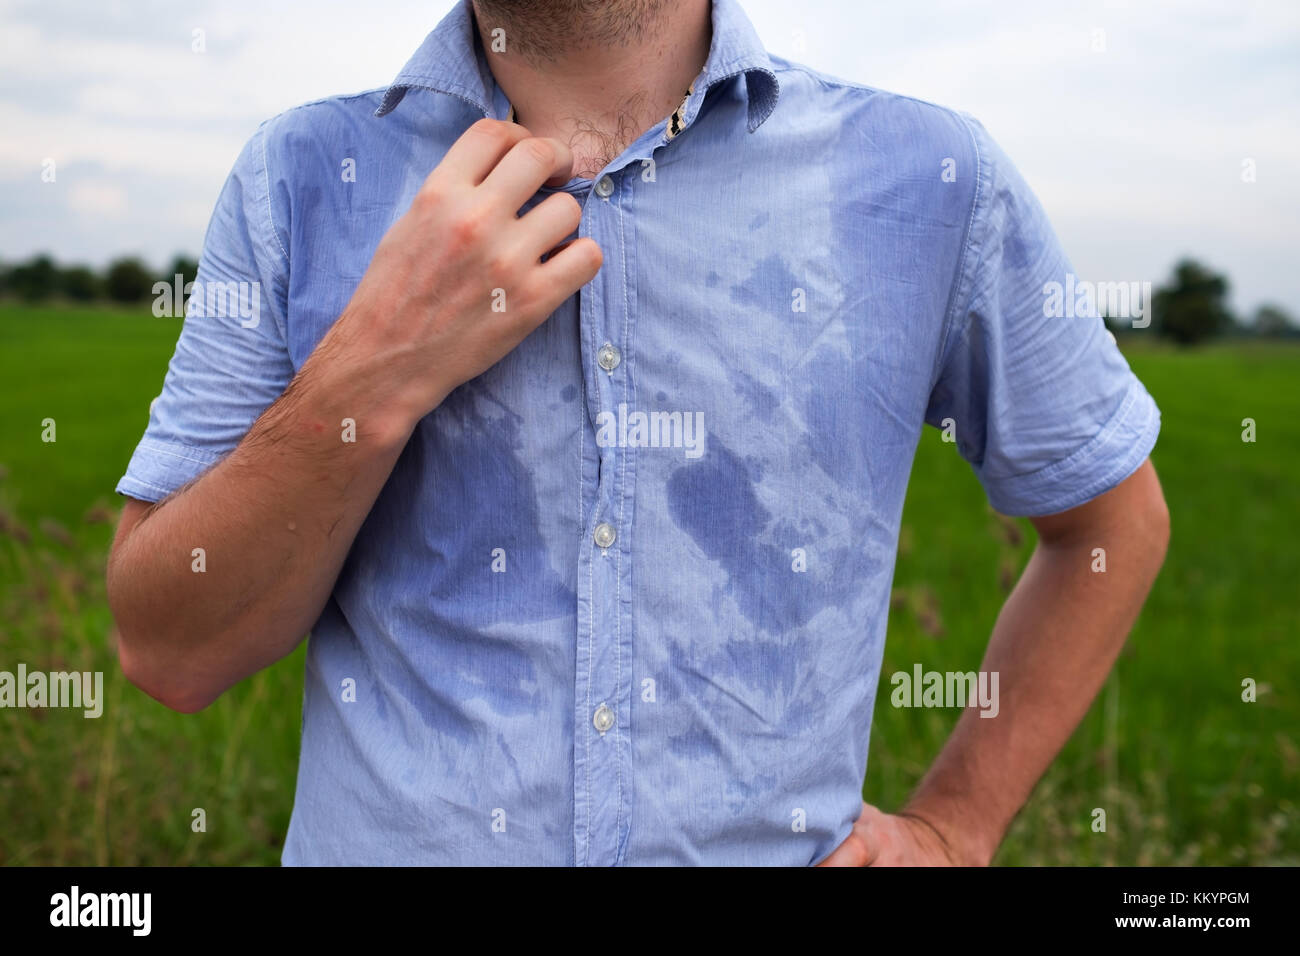 how to stop excessive sweating under armpits